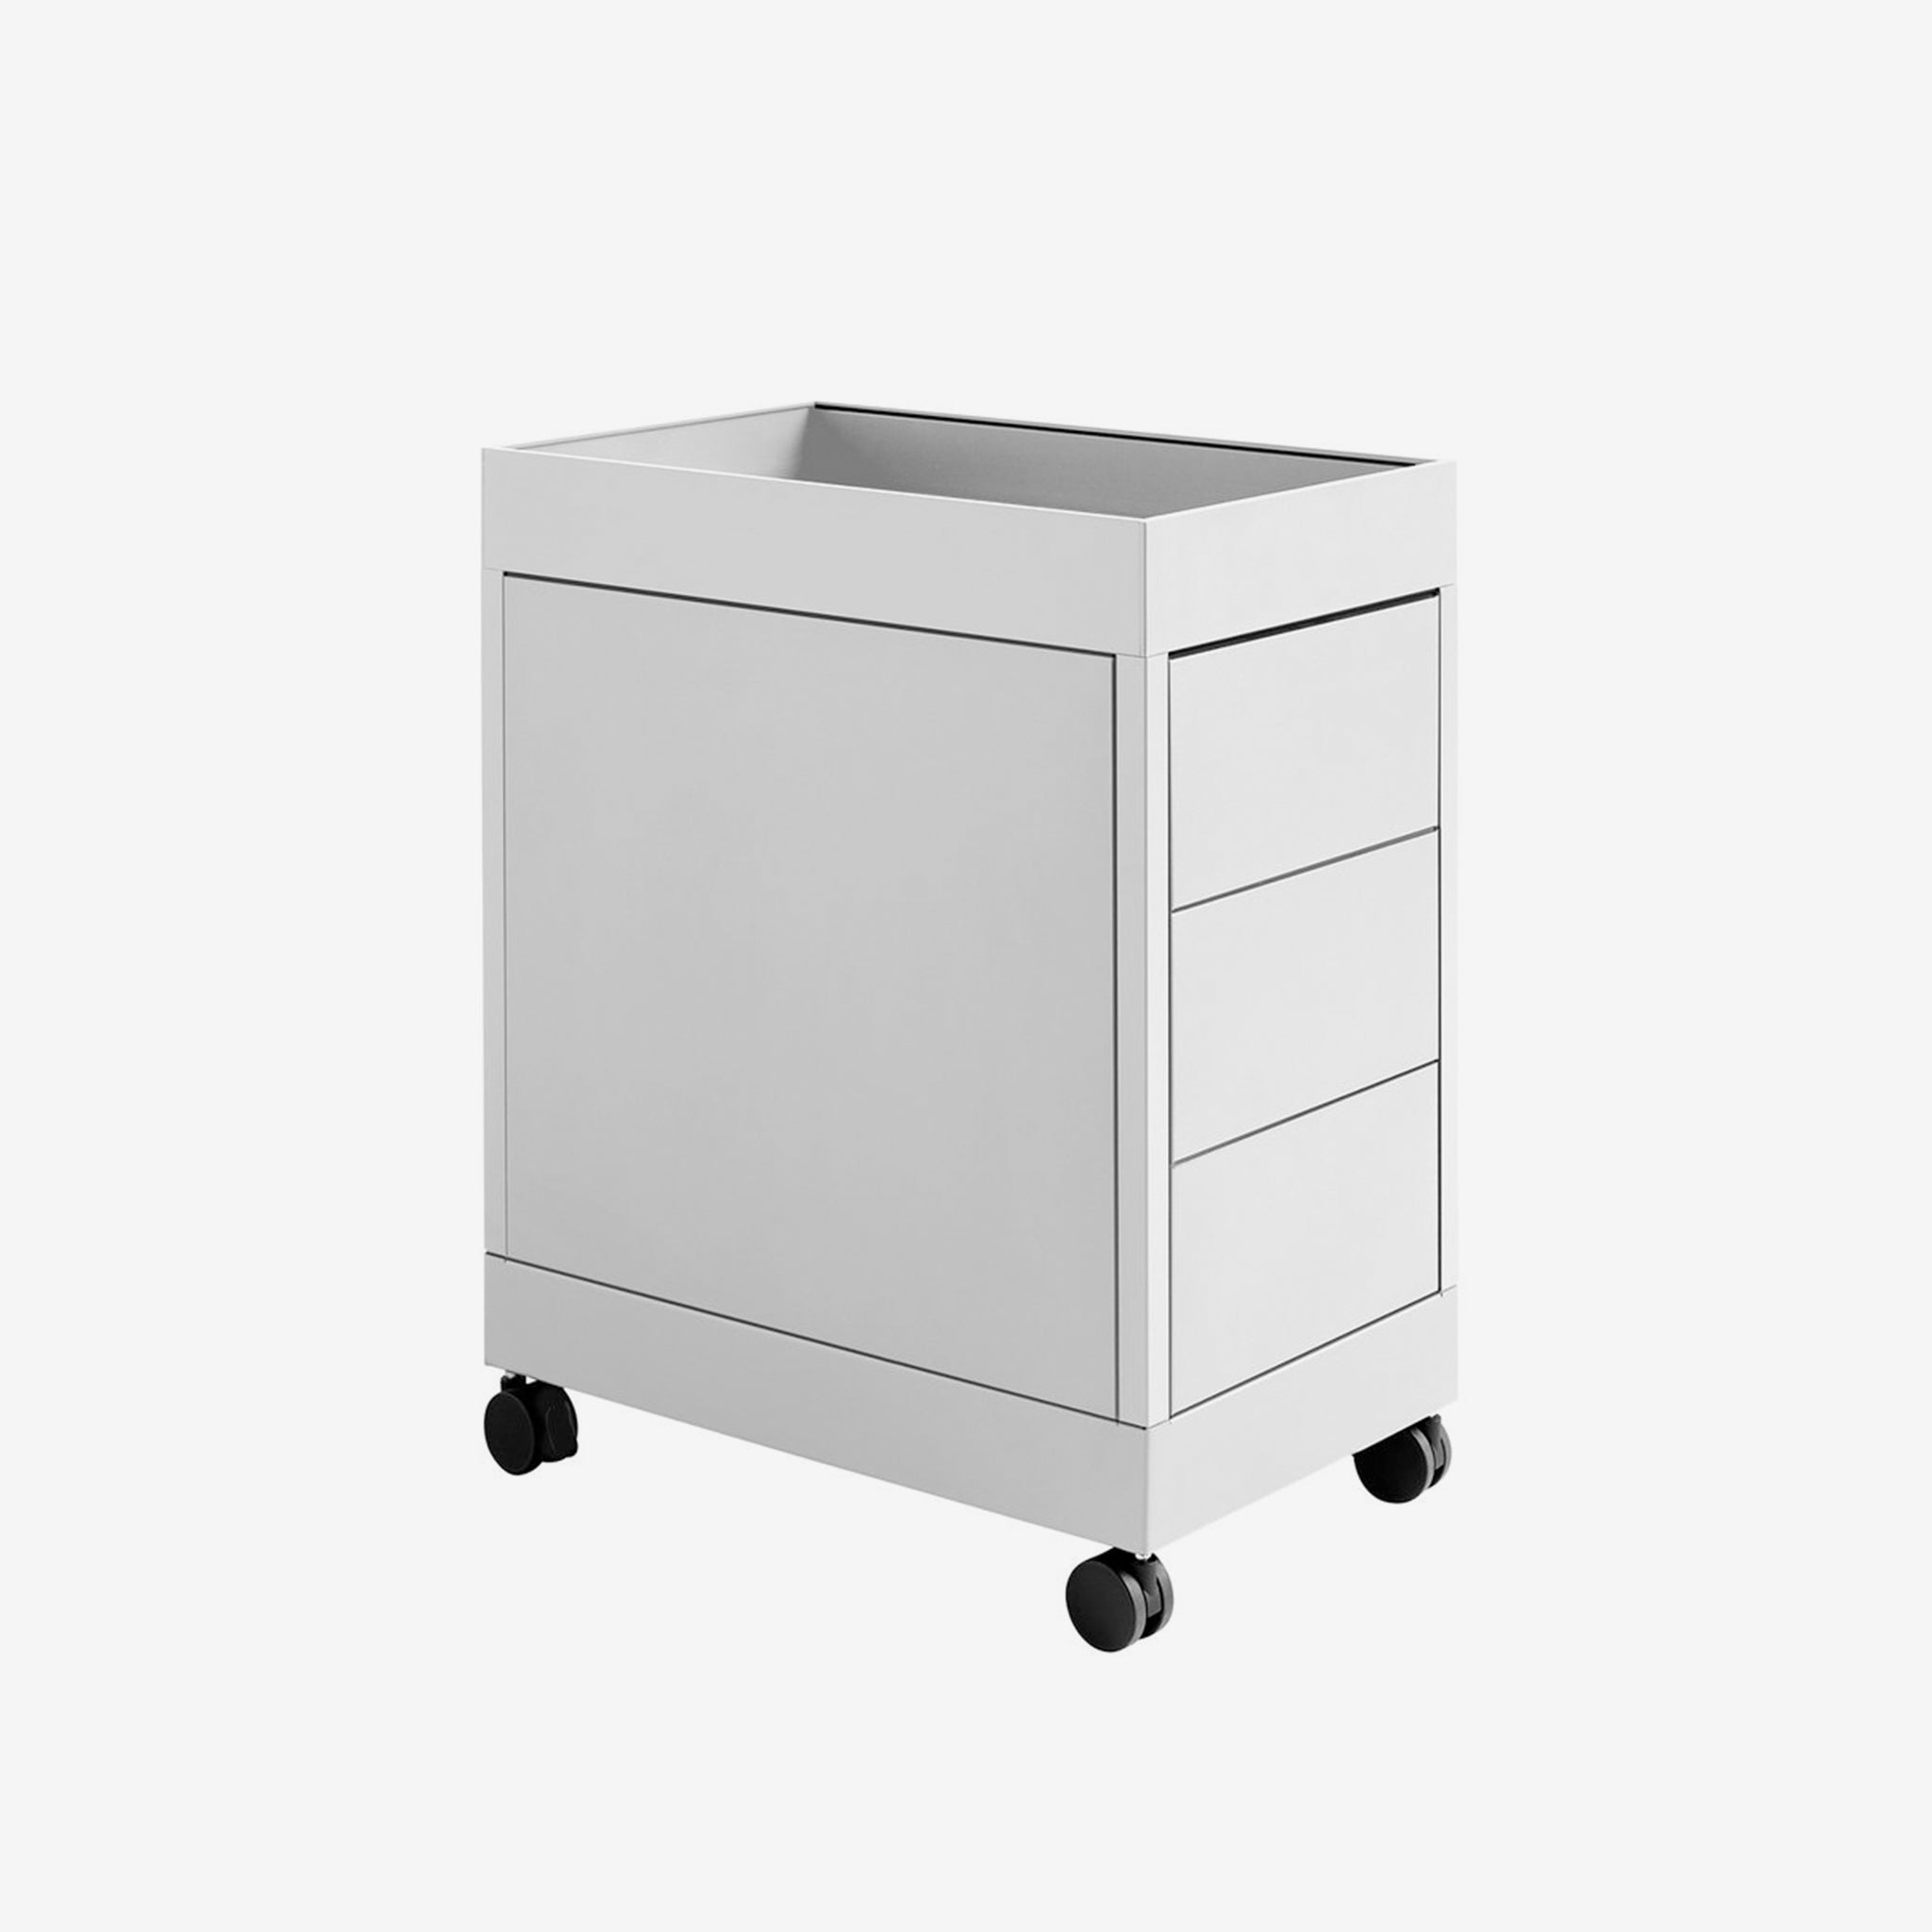 New order Trolley B 3 drawers & tray top